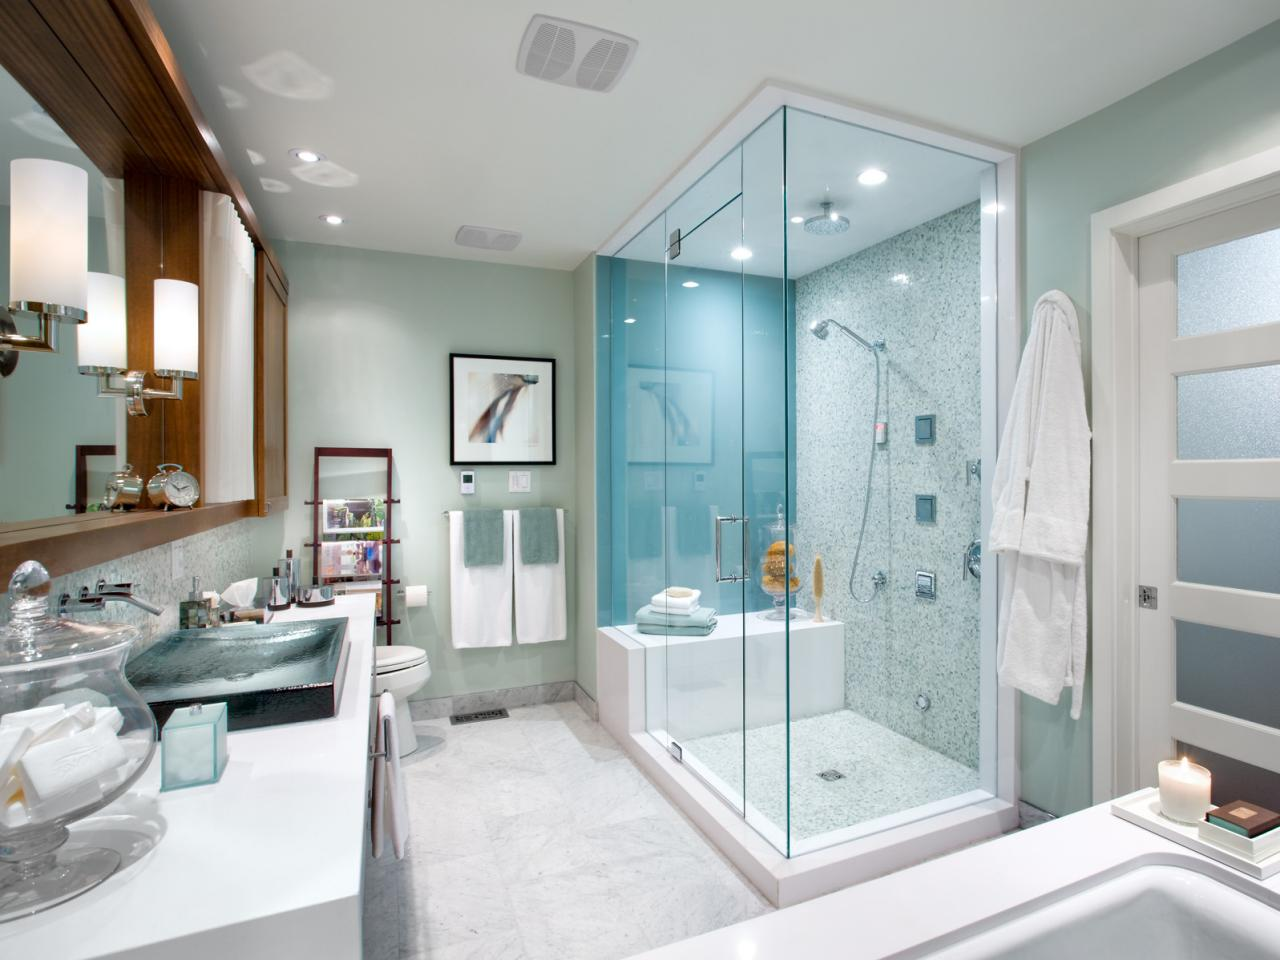 Featured Photo of Bathroom Remodeling Ideas On A Budget That Are Budget Friendly